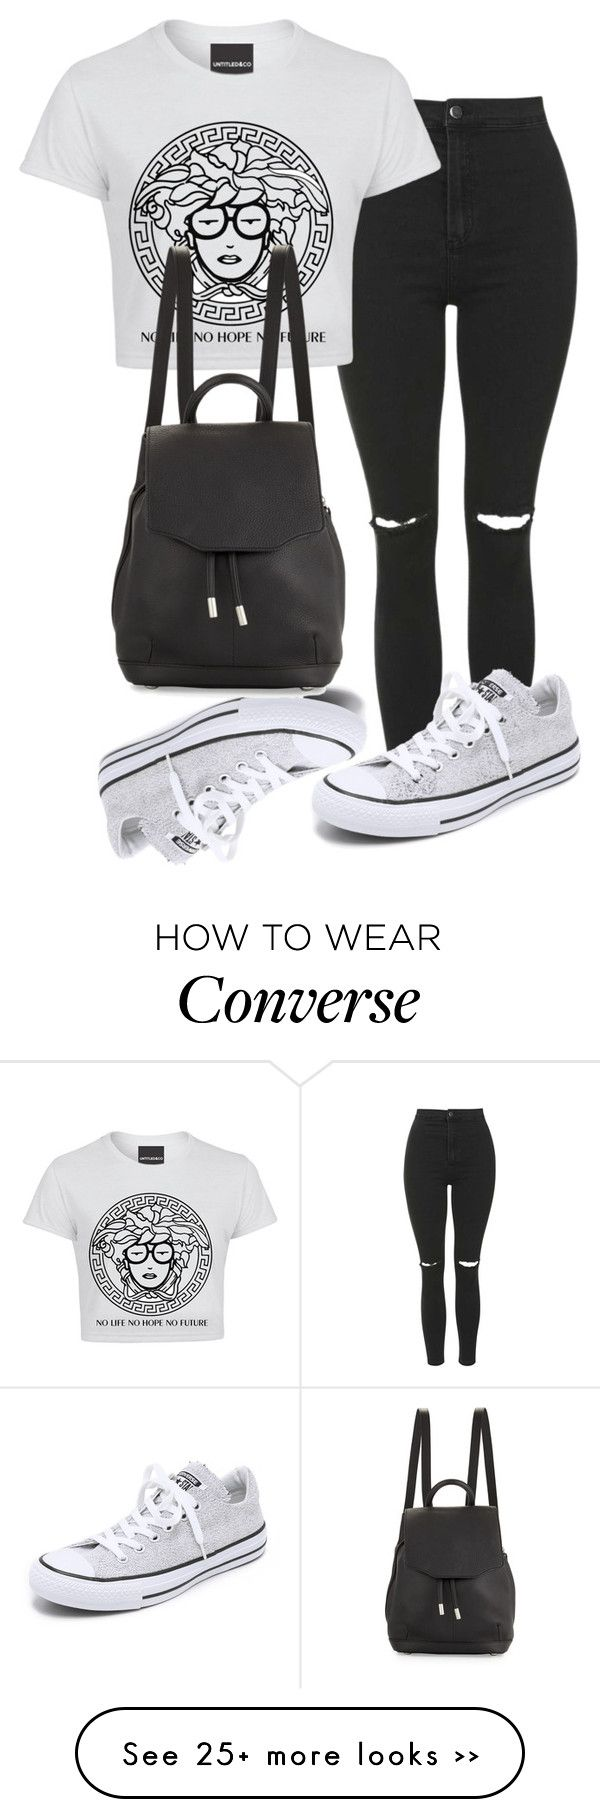 """."" by adorci02 on Polyvore featuring Topshop, Converse and rag & bone"